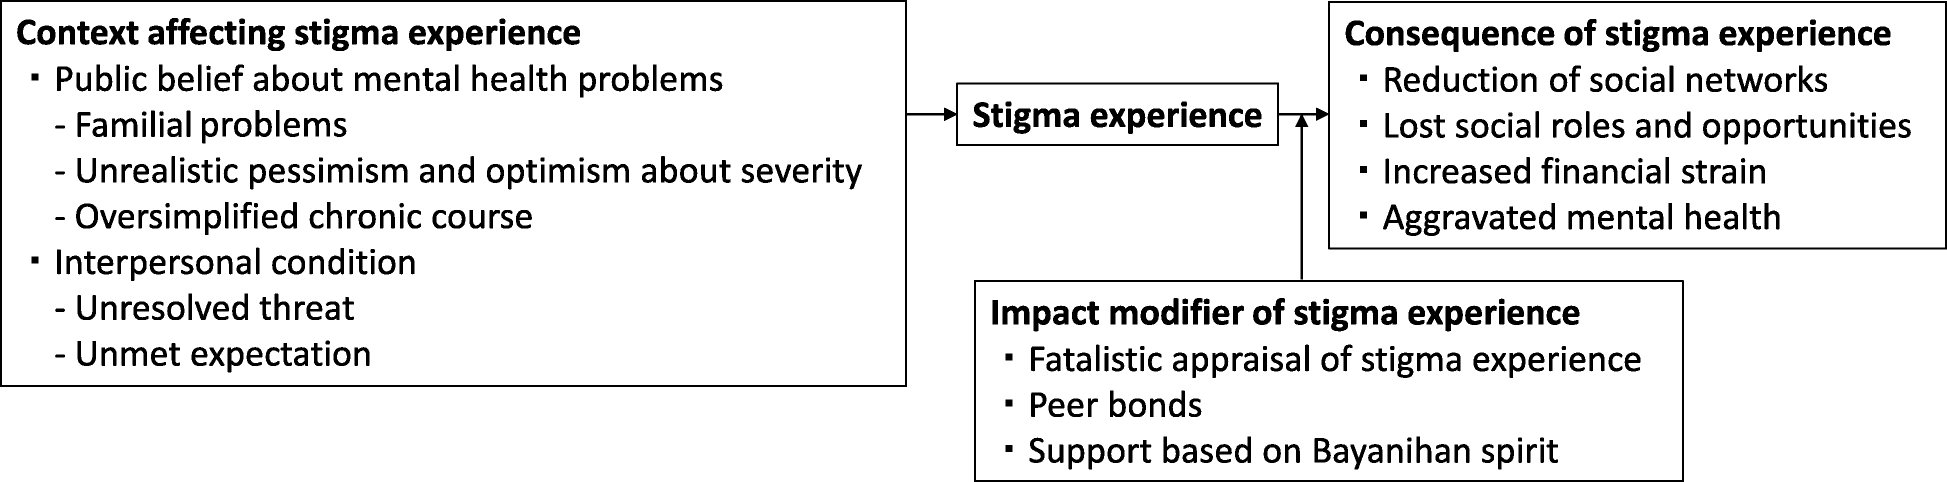 A Qualitative Study On The Stigma Experienced By People With Mental